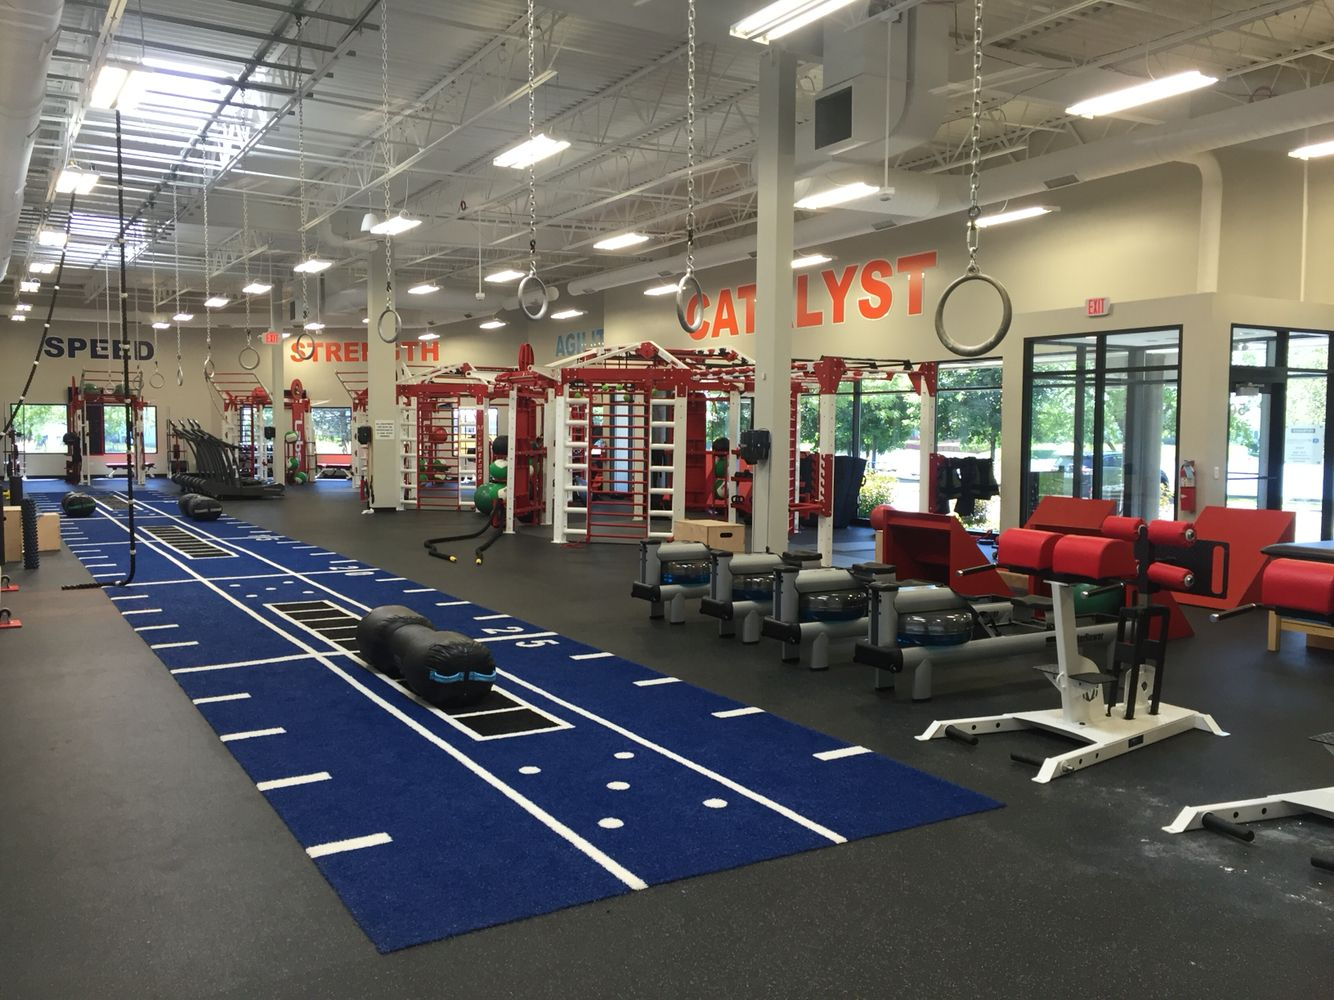 Carpet Garage Hours Movestrong Layout And Custom Functional Training Station